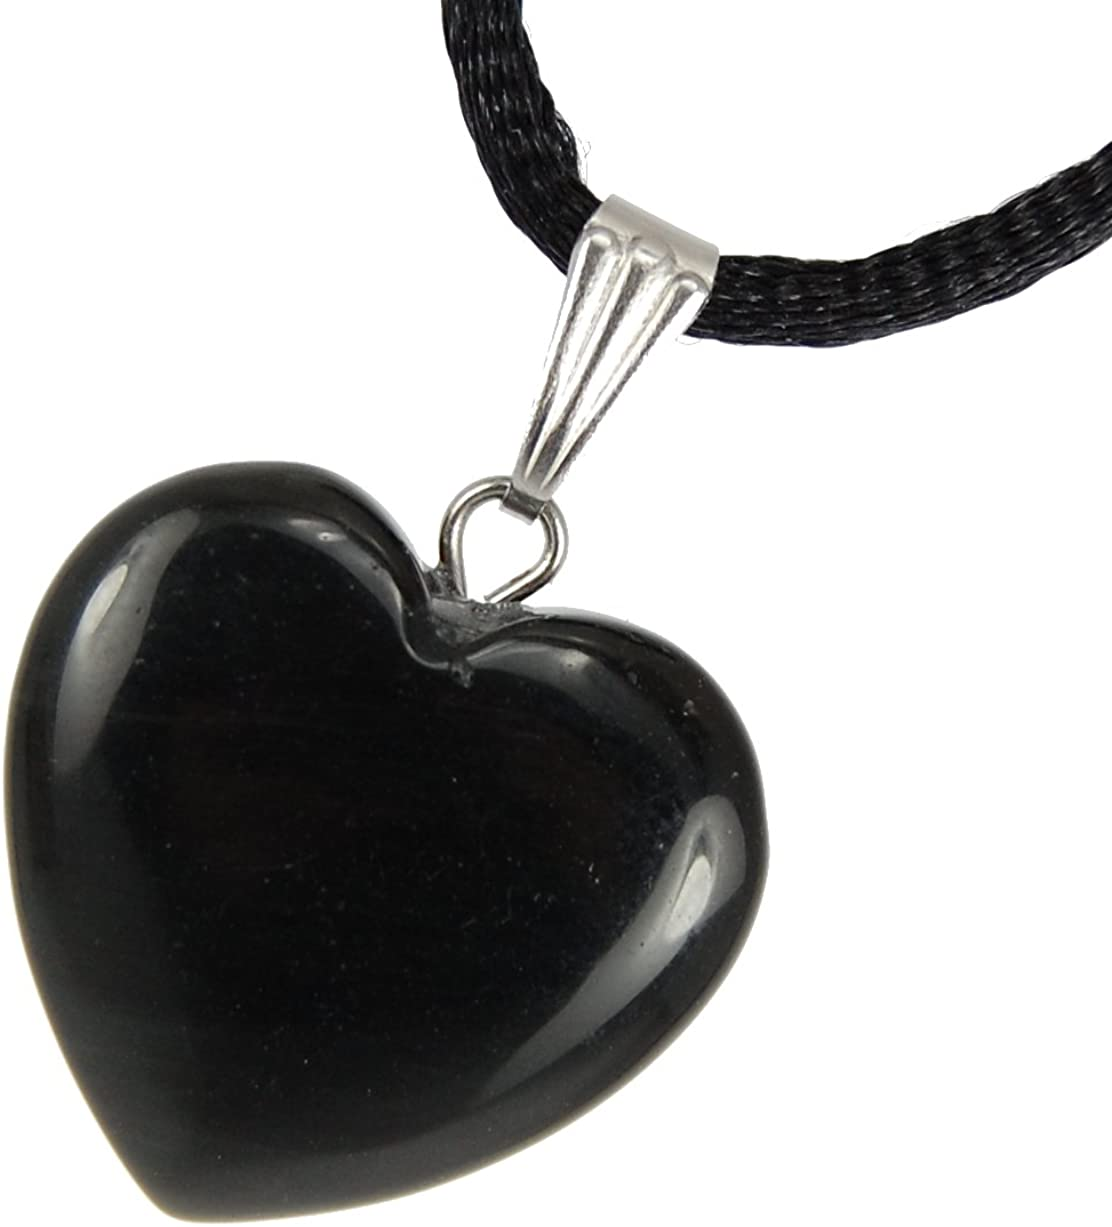 Crystal Gemstone Carved Necklace Charm Handmade 20mm Classic Obsidian Black 20-22 inch Black Cord Steampunkers USA Big Heart Collection